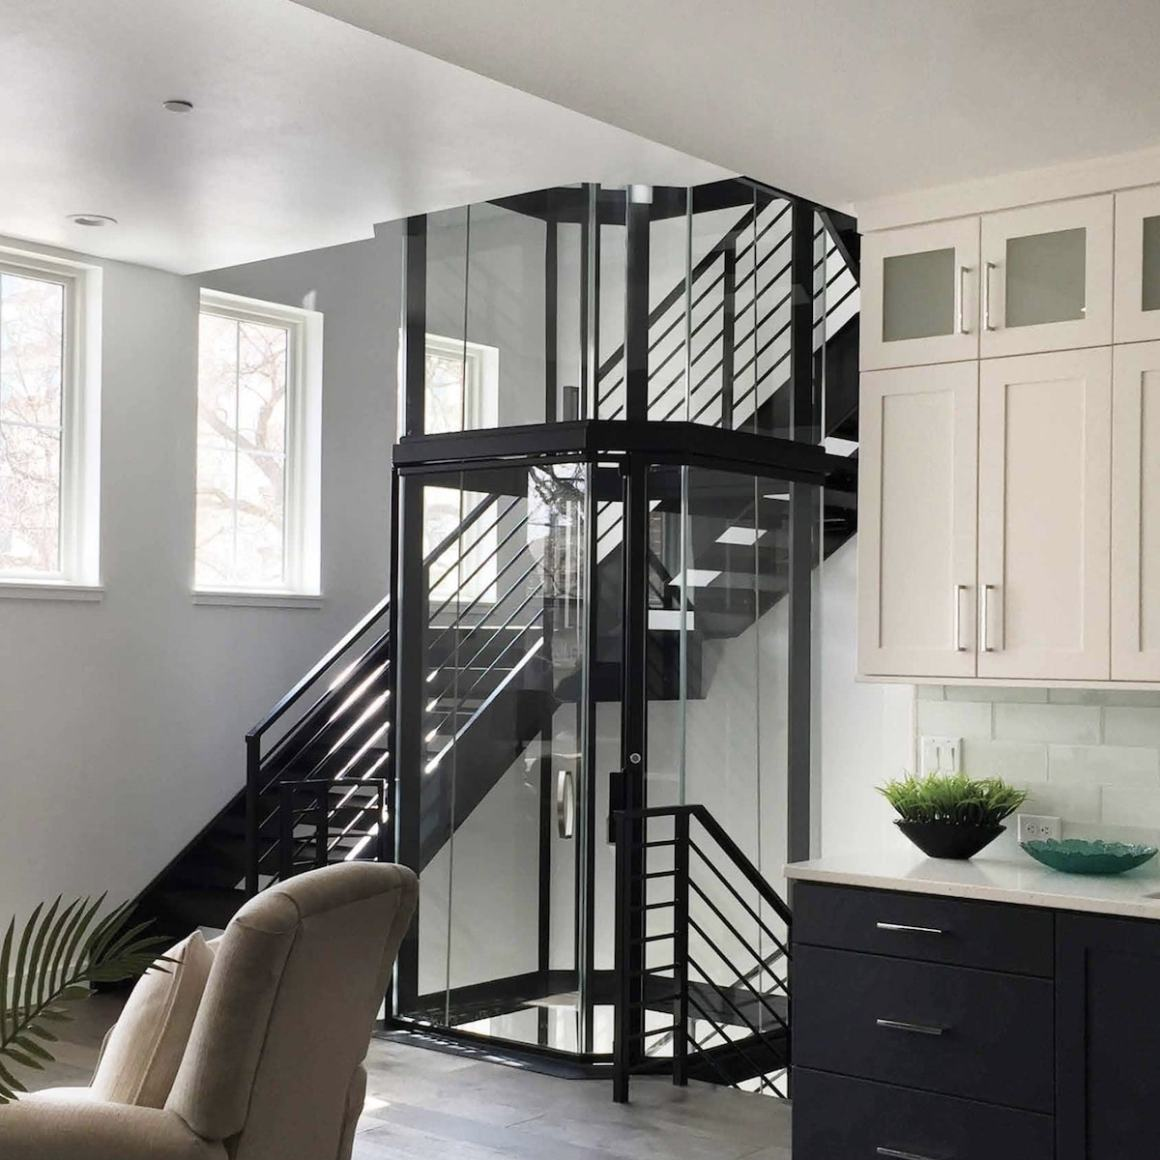 Vuelift home elevator by Avaria